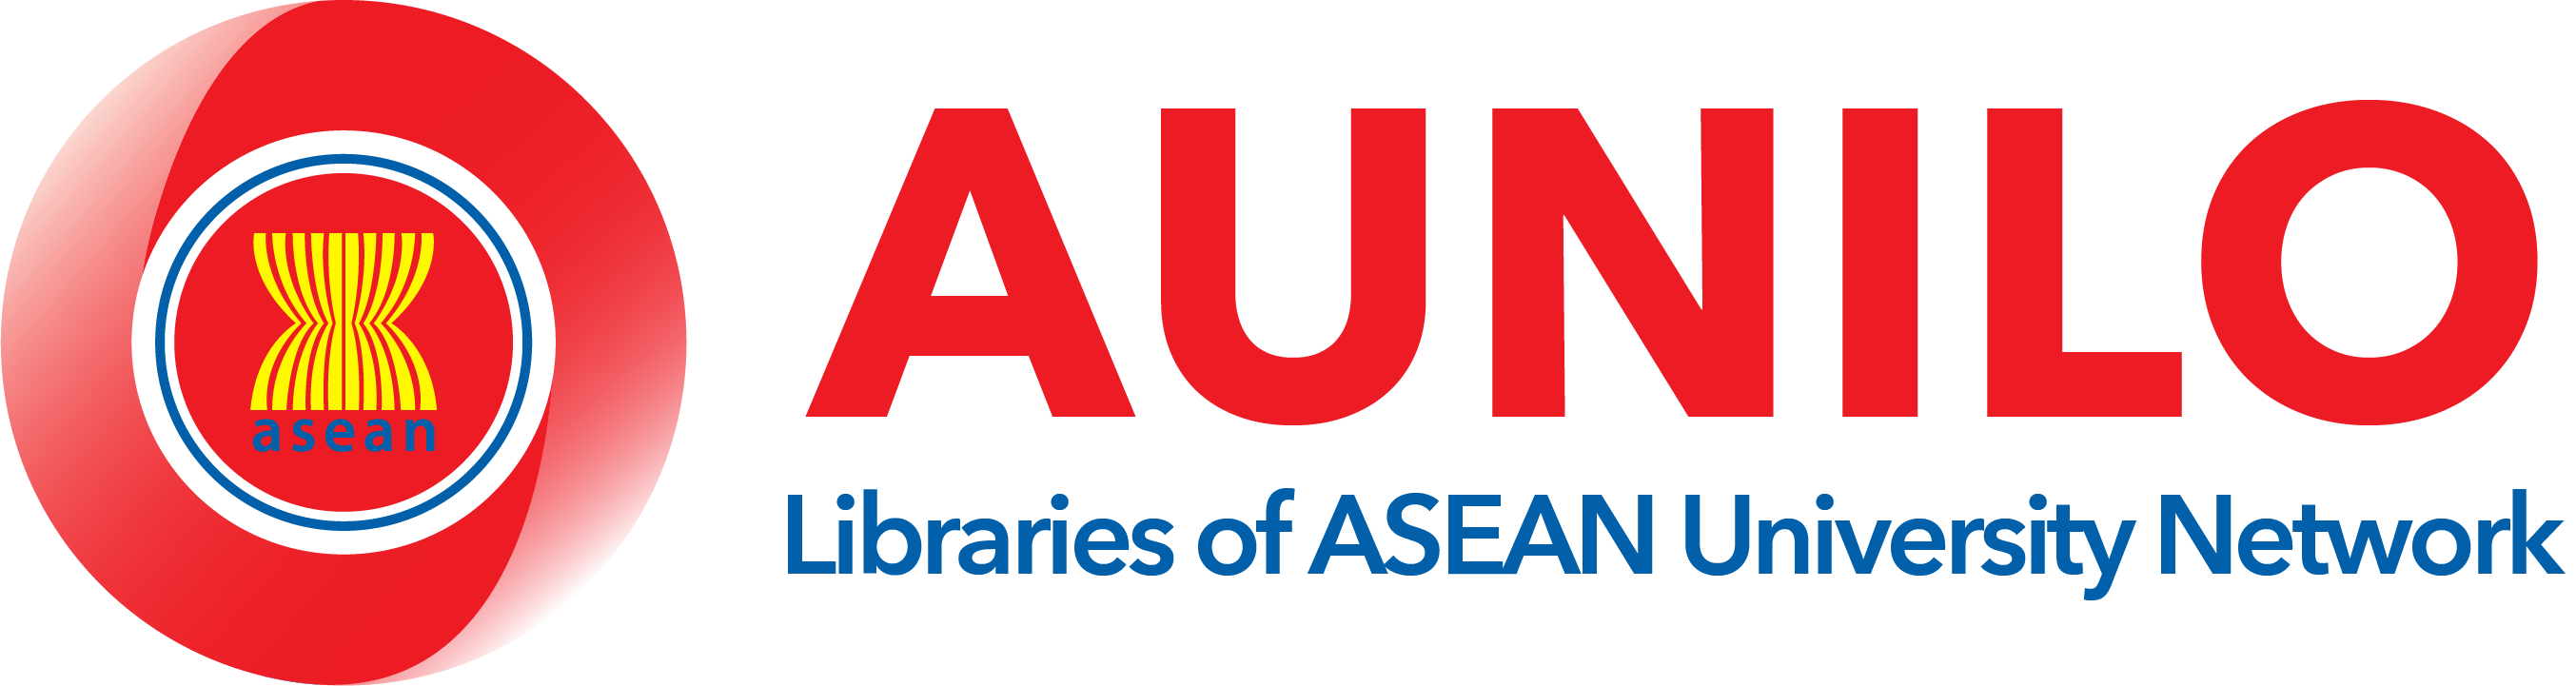 AUNILO: Libraries of ASEAN University Network